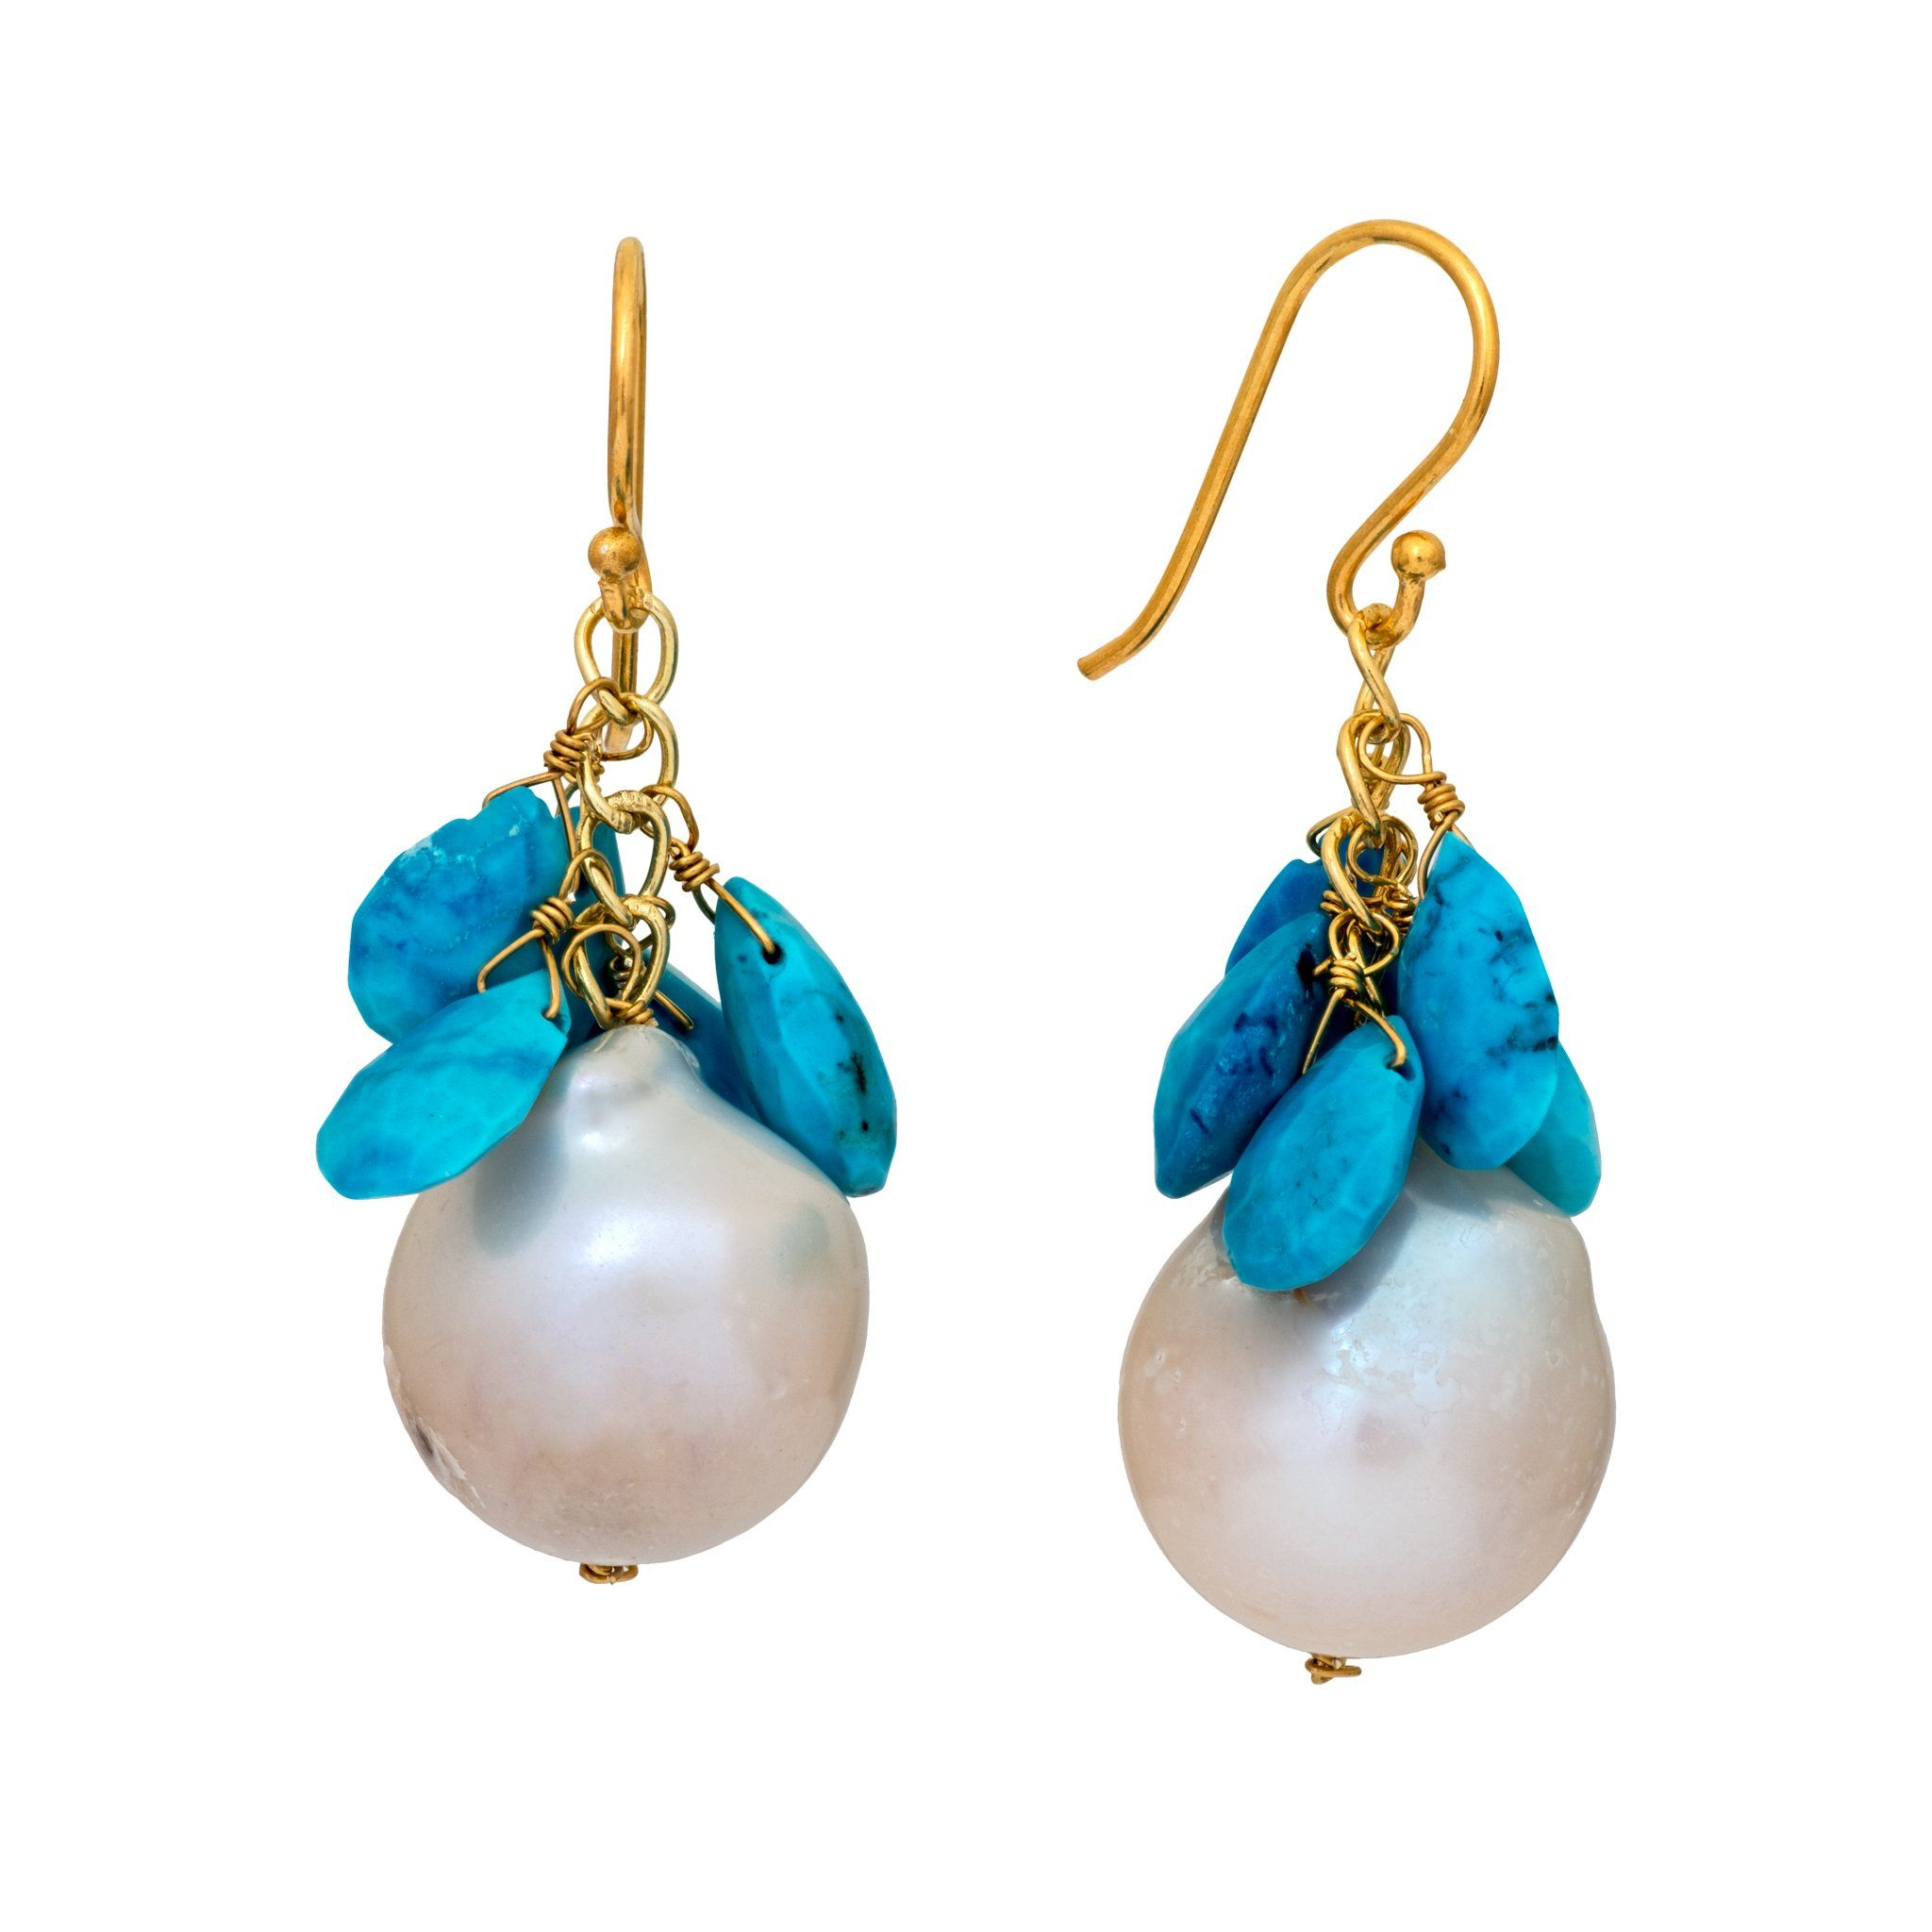 COCO pearl and turquoise earrings - MadamSiam